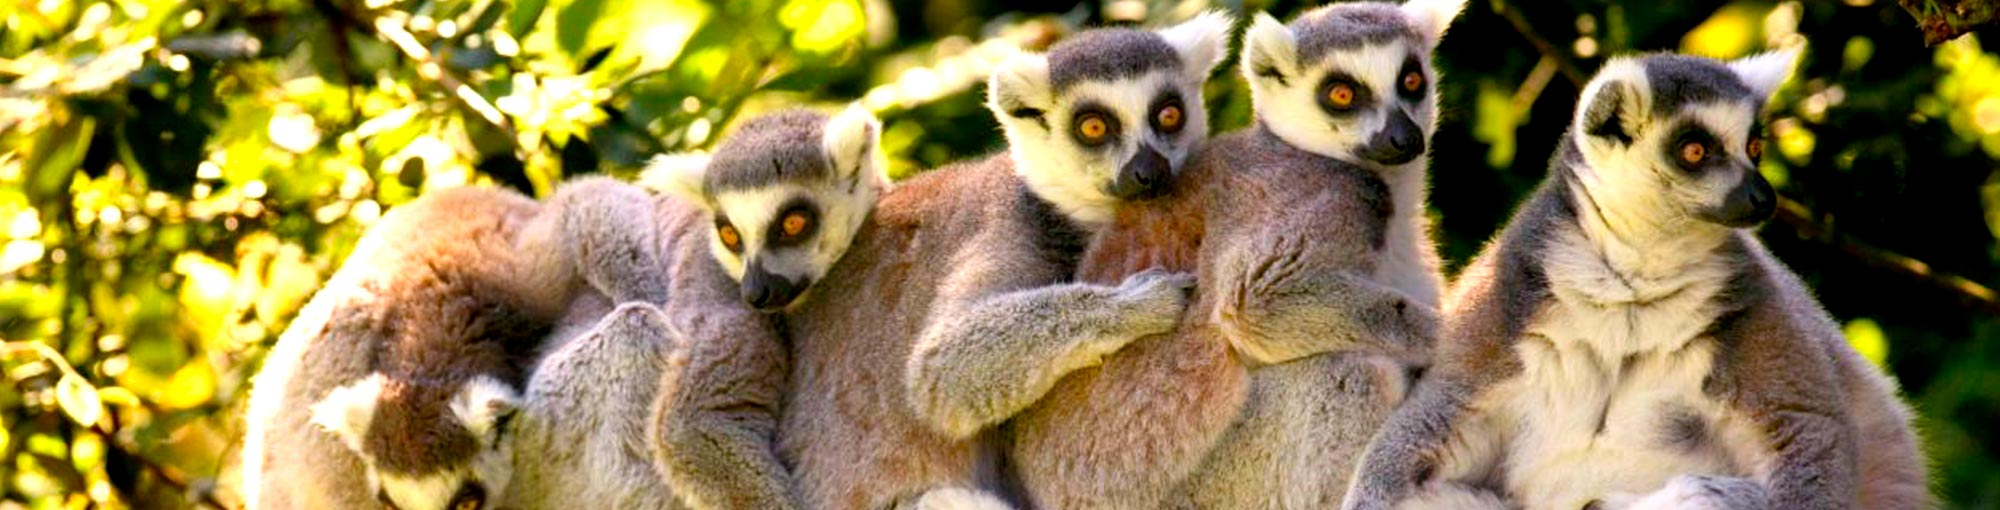 Forum Voyage Madagascar Visit Mada Tours Your Trusted Local Tour Company In Madagascar